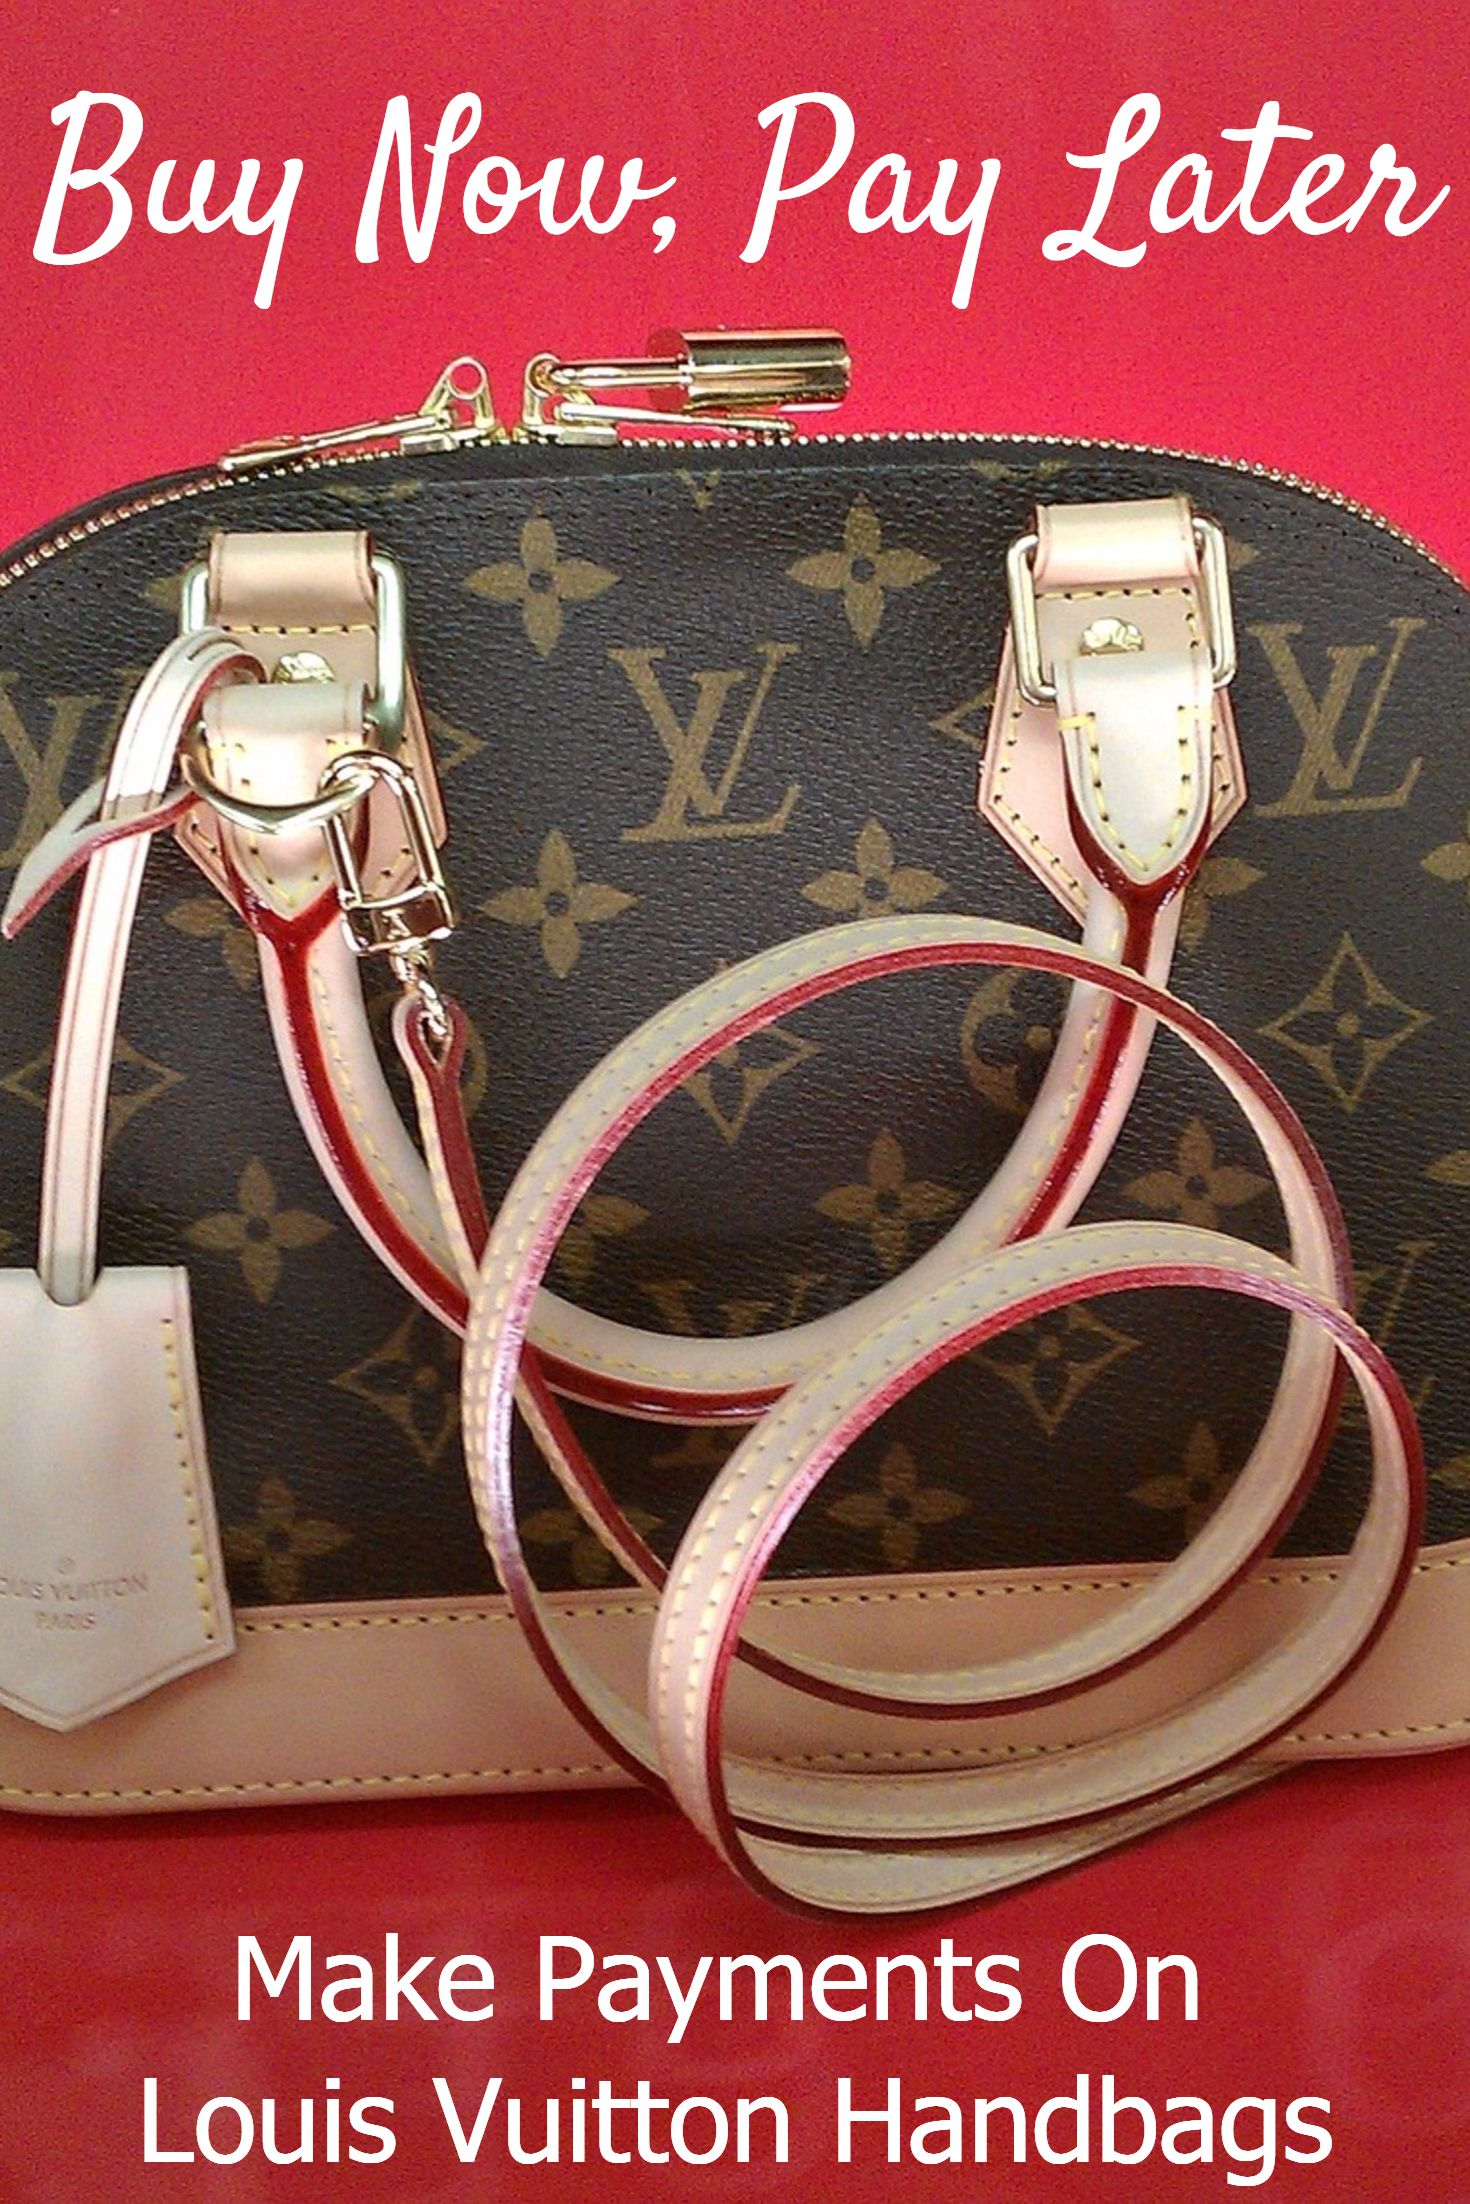 I think every girl s dream is to own a real Louis Vuitton handbag! But the  cost of a new Louis Vuitton bag costs more than most people pay for three  months ... 3c585d6f332e8